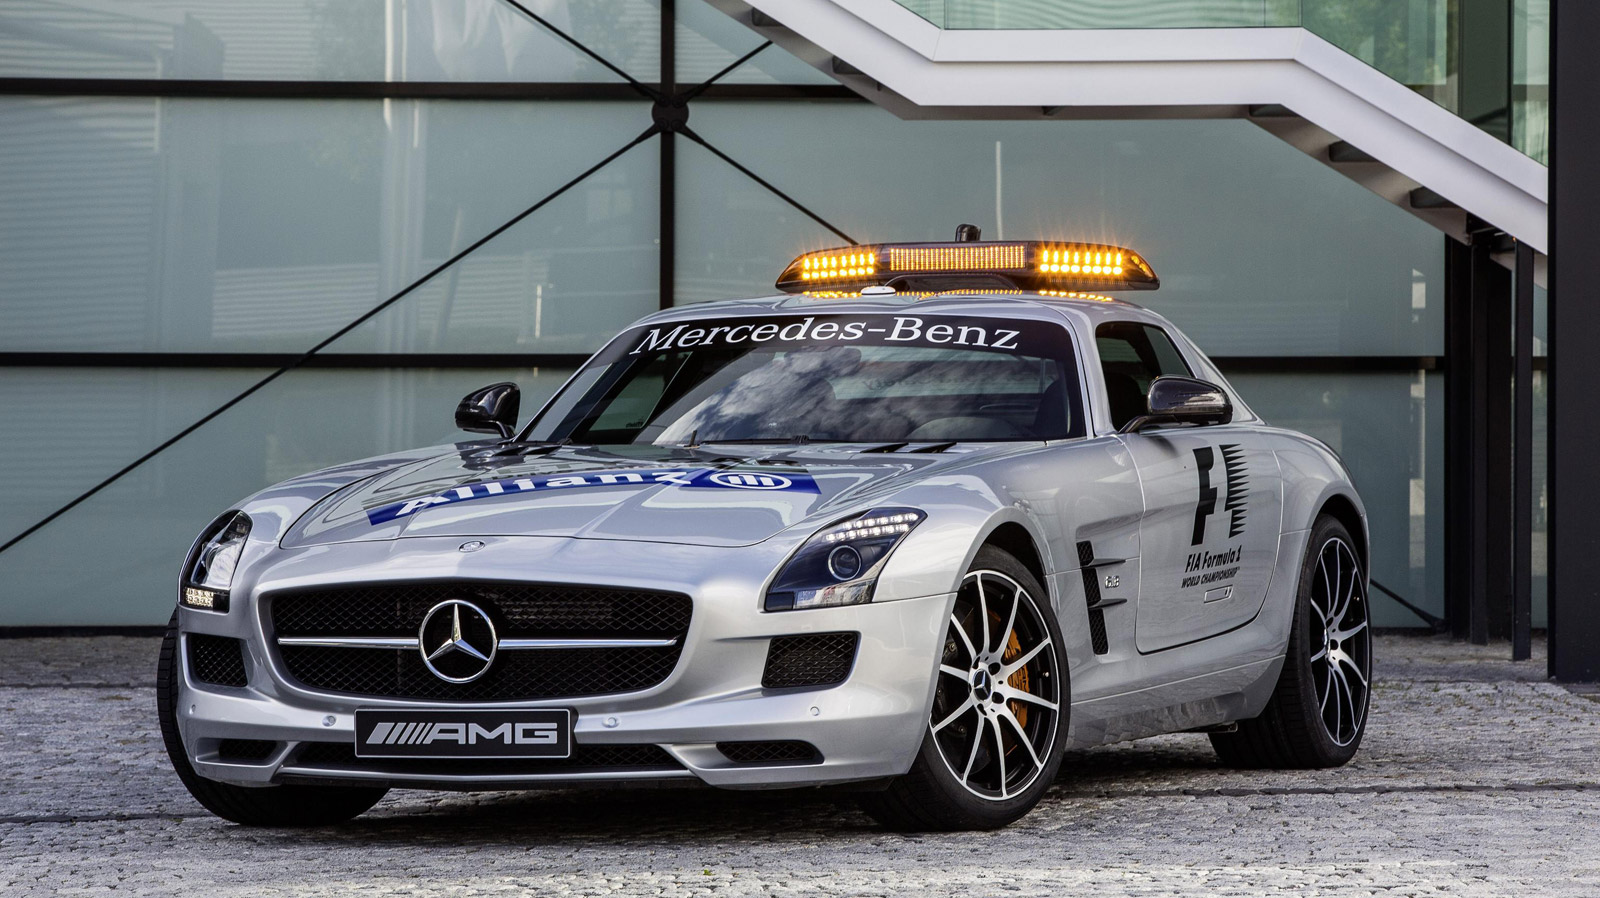 mercedes benz sls amg gt is the official safety car for the 2012 formula 1 season 100402706. Black Bedroom Furniture Sets. Home Design Ideas